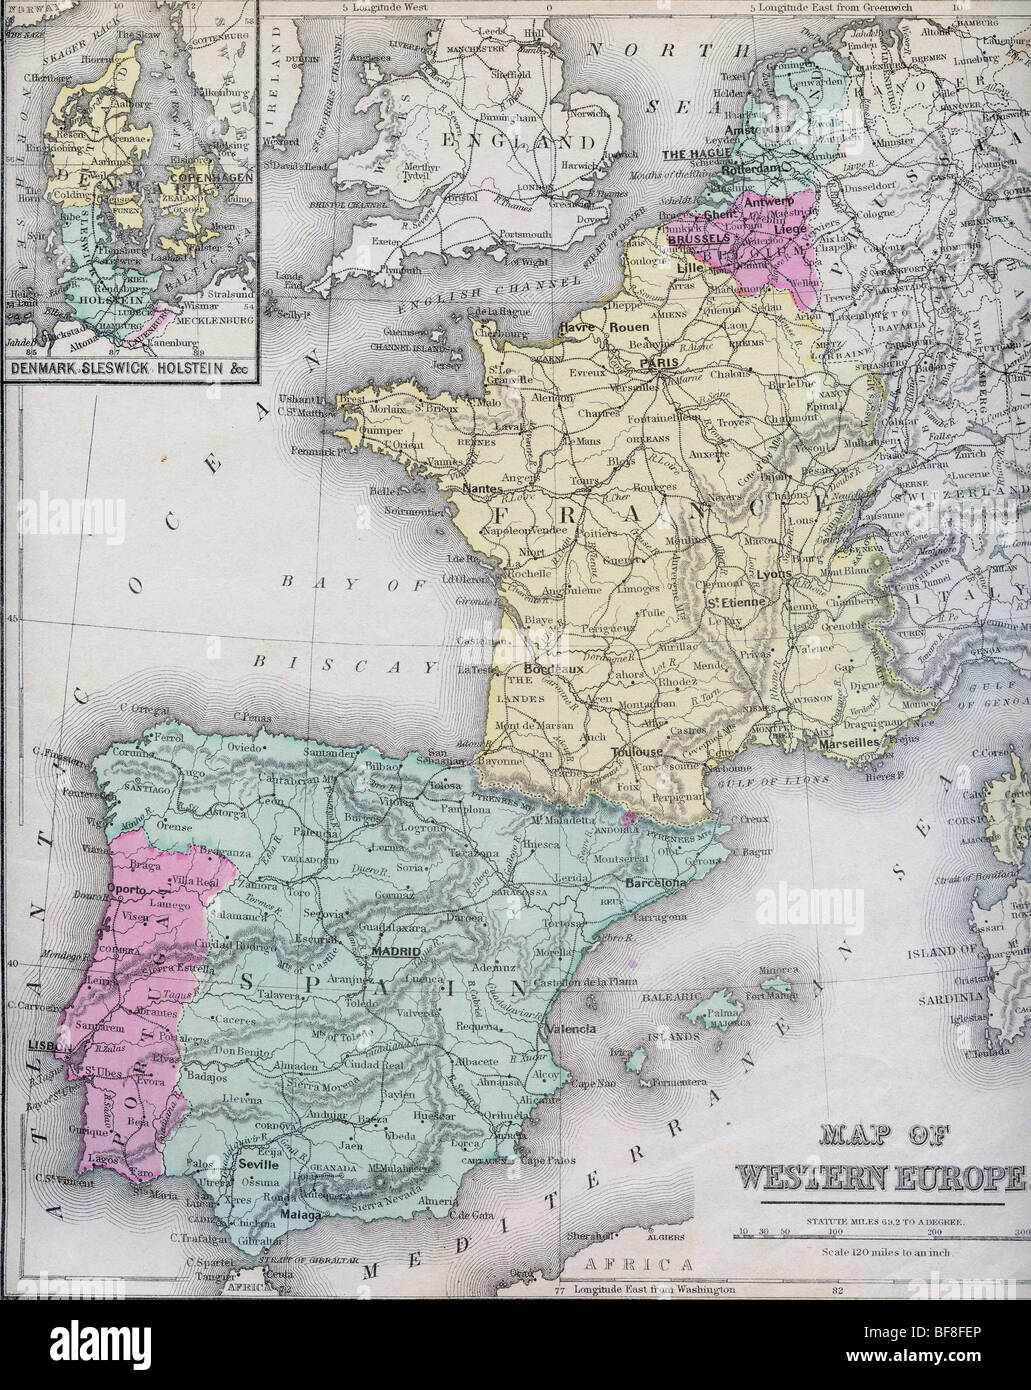 original old map of western europe from 1879 geography textbook